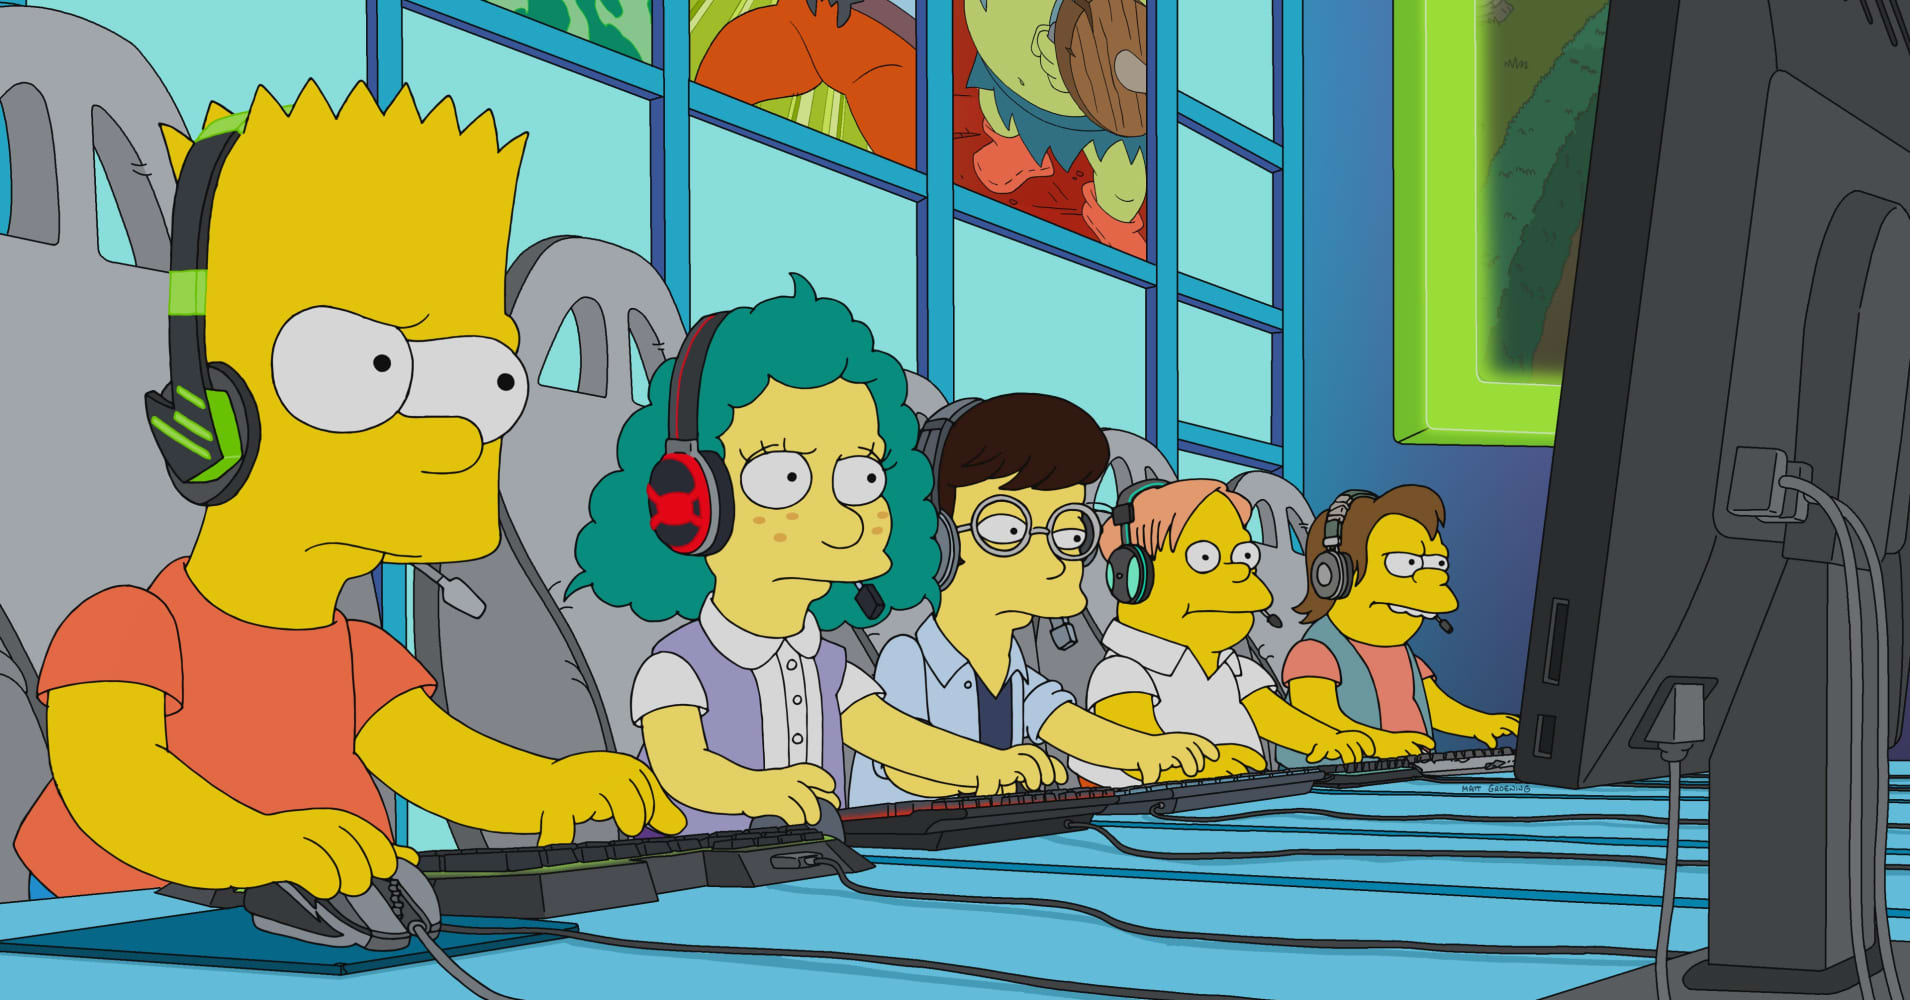 Esports just made its way onto 'The Simpsons' — here's why that matters